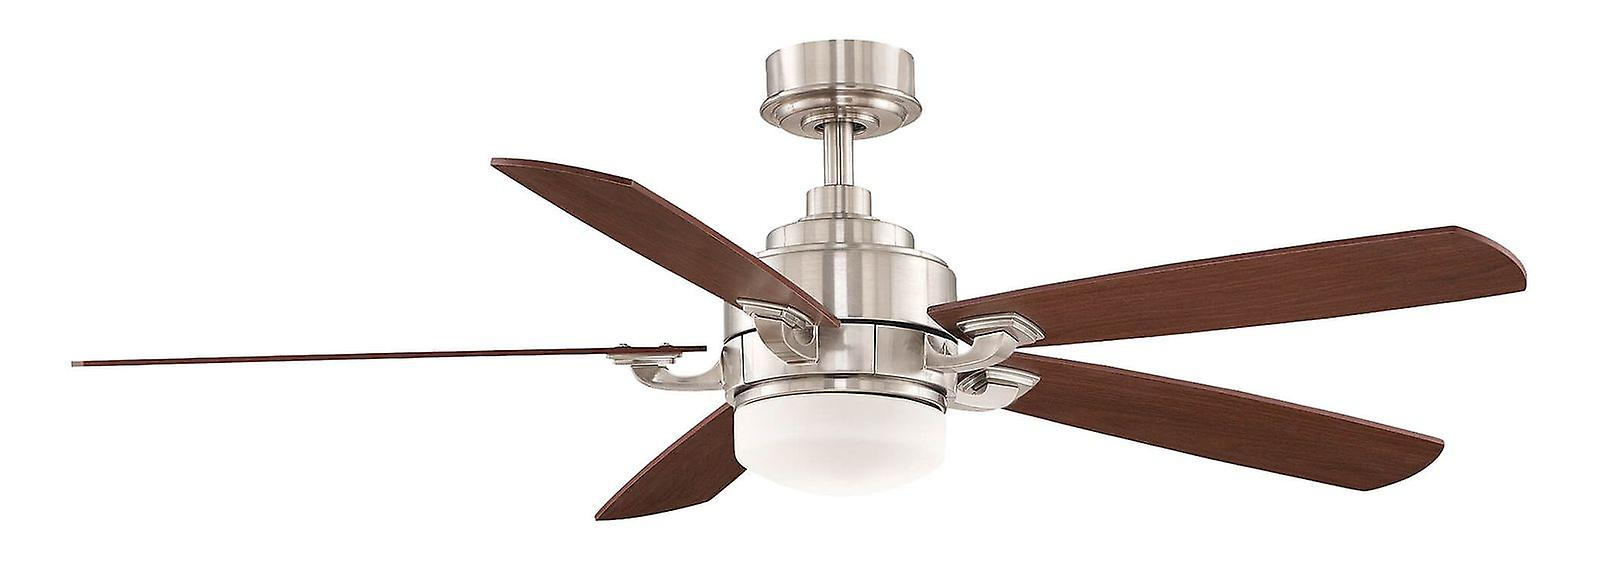 Ceiling fan THE BENITO 132cm   52& 034; Chrome with light